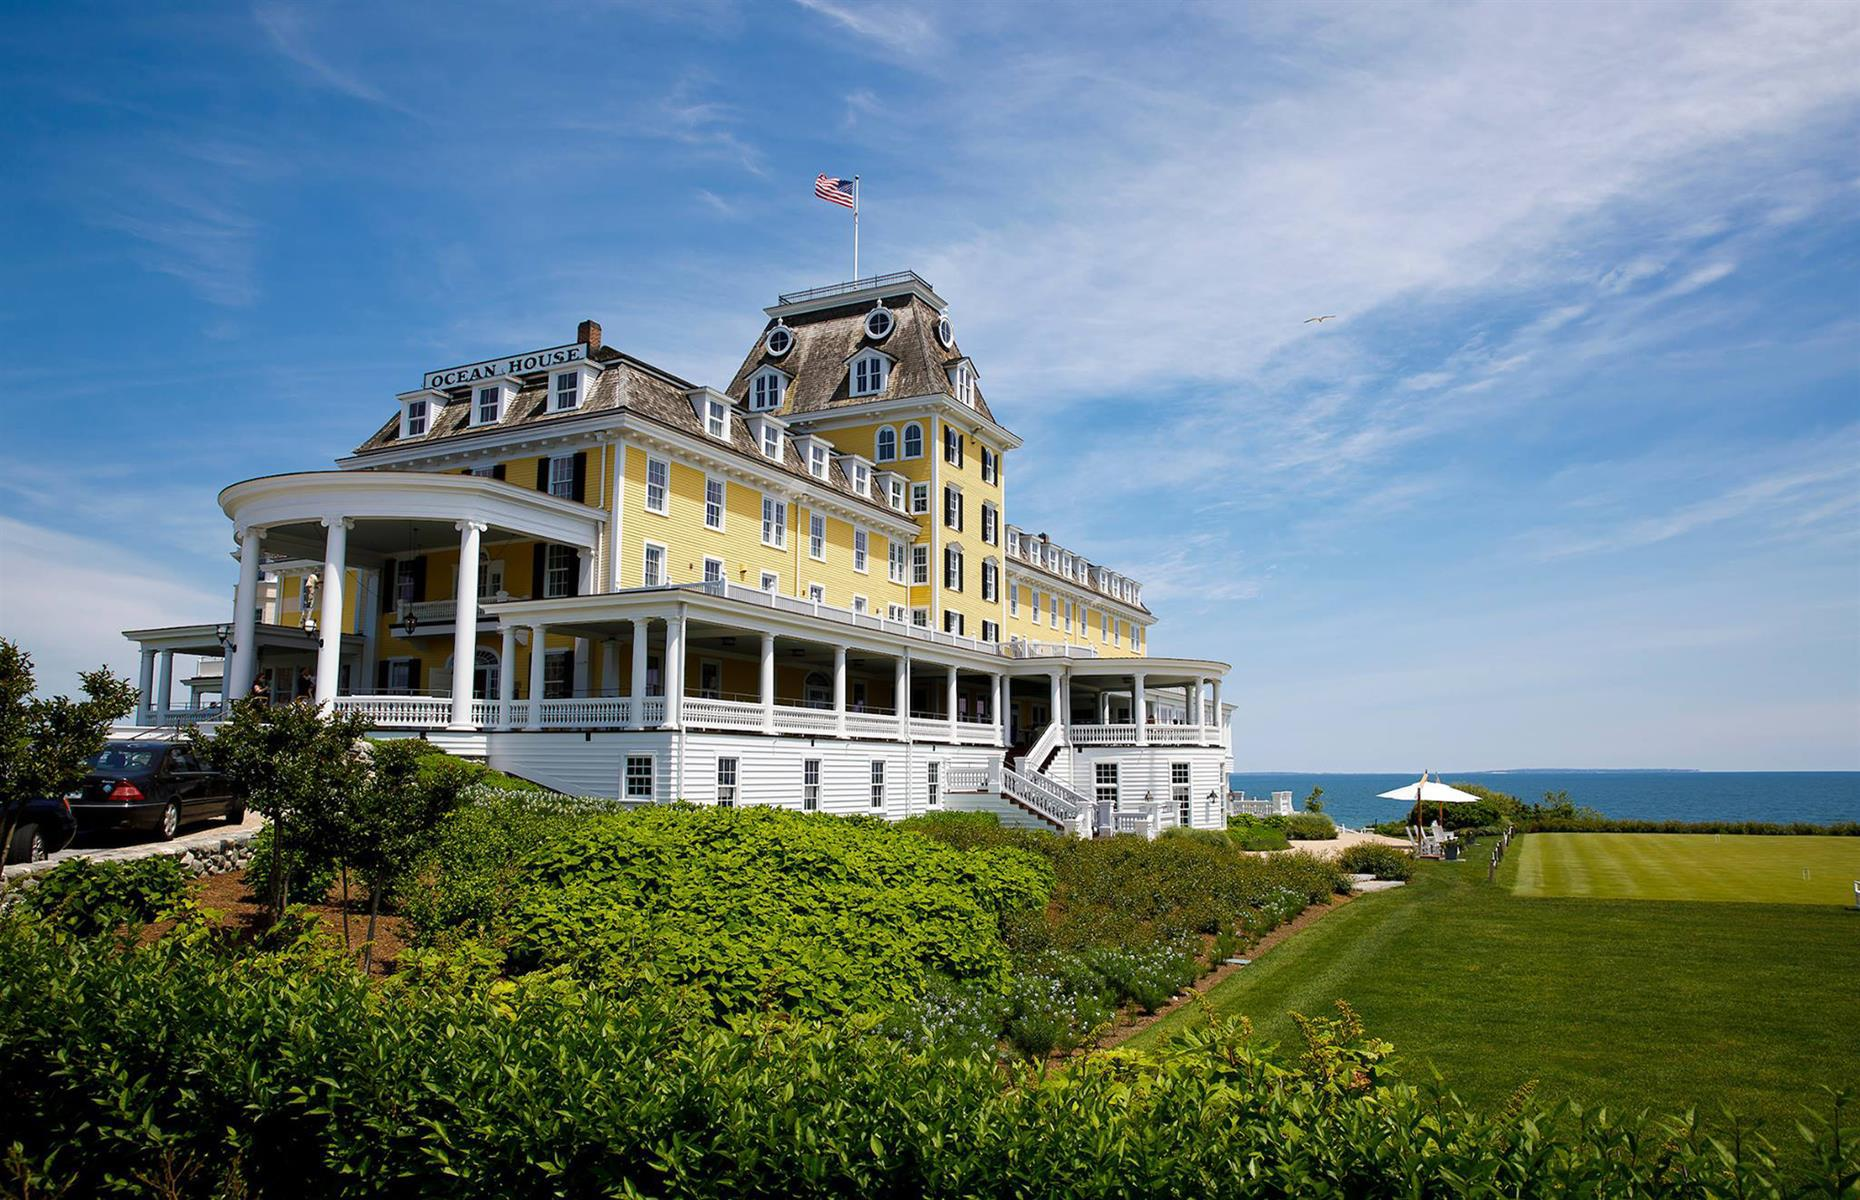 Slide 40 of 51: The charming New England town of Watch Hill served as the Hamptons of its day, and this Grand Victorian house hotel was brought thoroughly up-to-date in 2014 following a change of ownership, while retaining original features such as the stone fireplace and reception desk. With a sprawling lawn, expansive sea views and a vintage feel, Ocean House offers a proper escape from the day-to-day life.